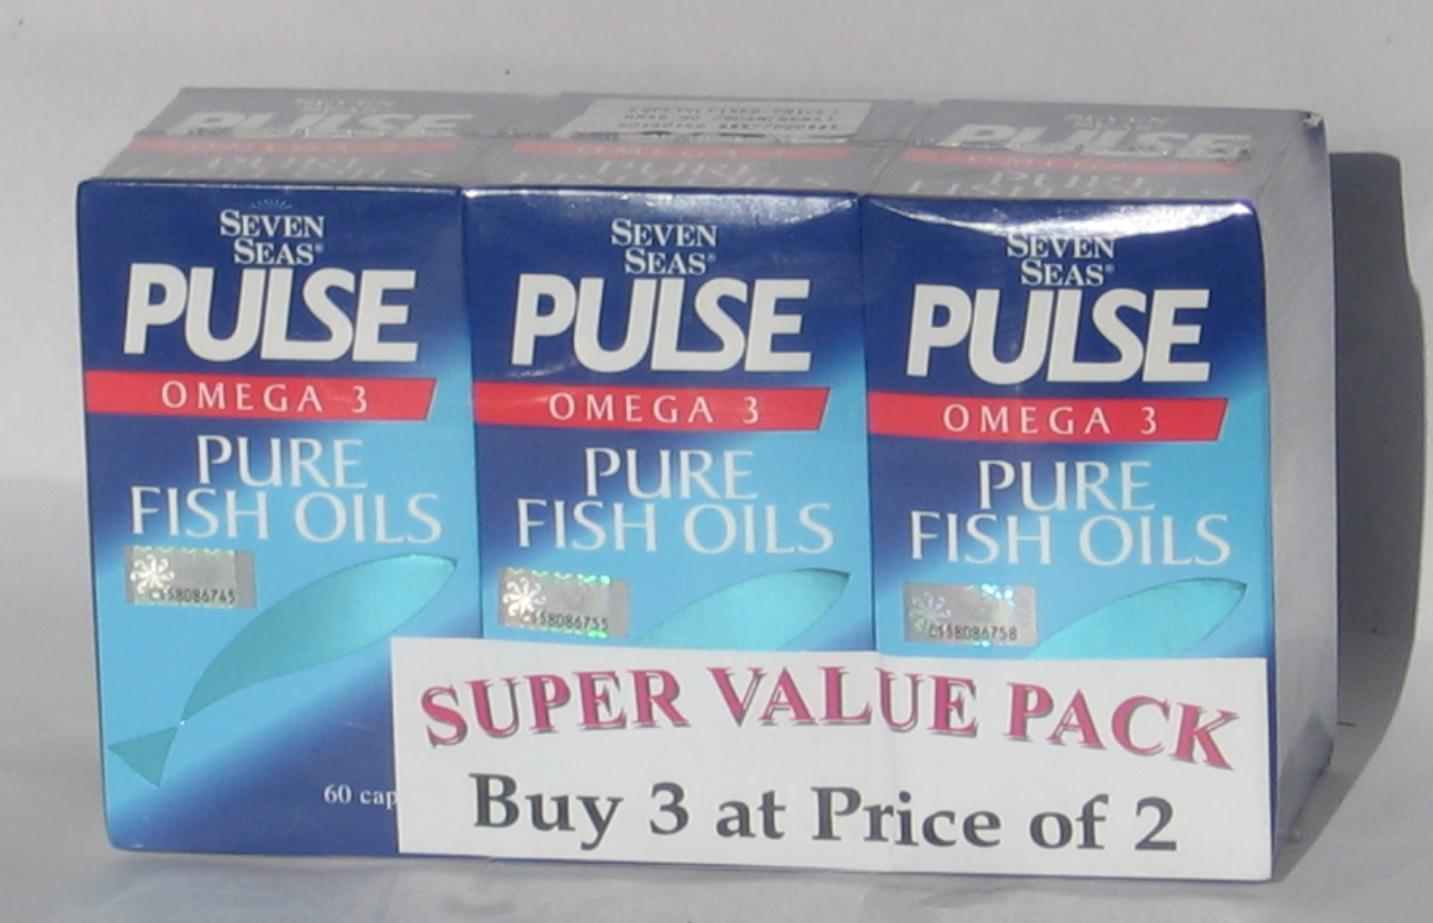 FREE SHIPPING! Seven Seas Pulse Omega 3 Pure Fish Oils 3 X 60's